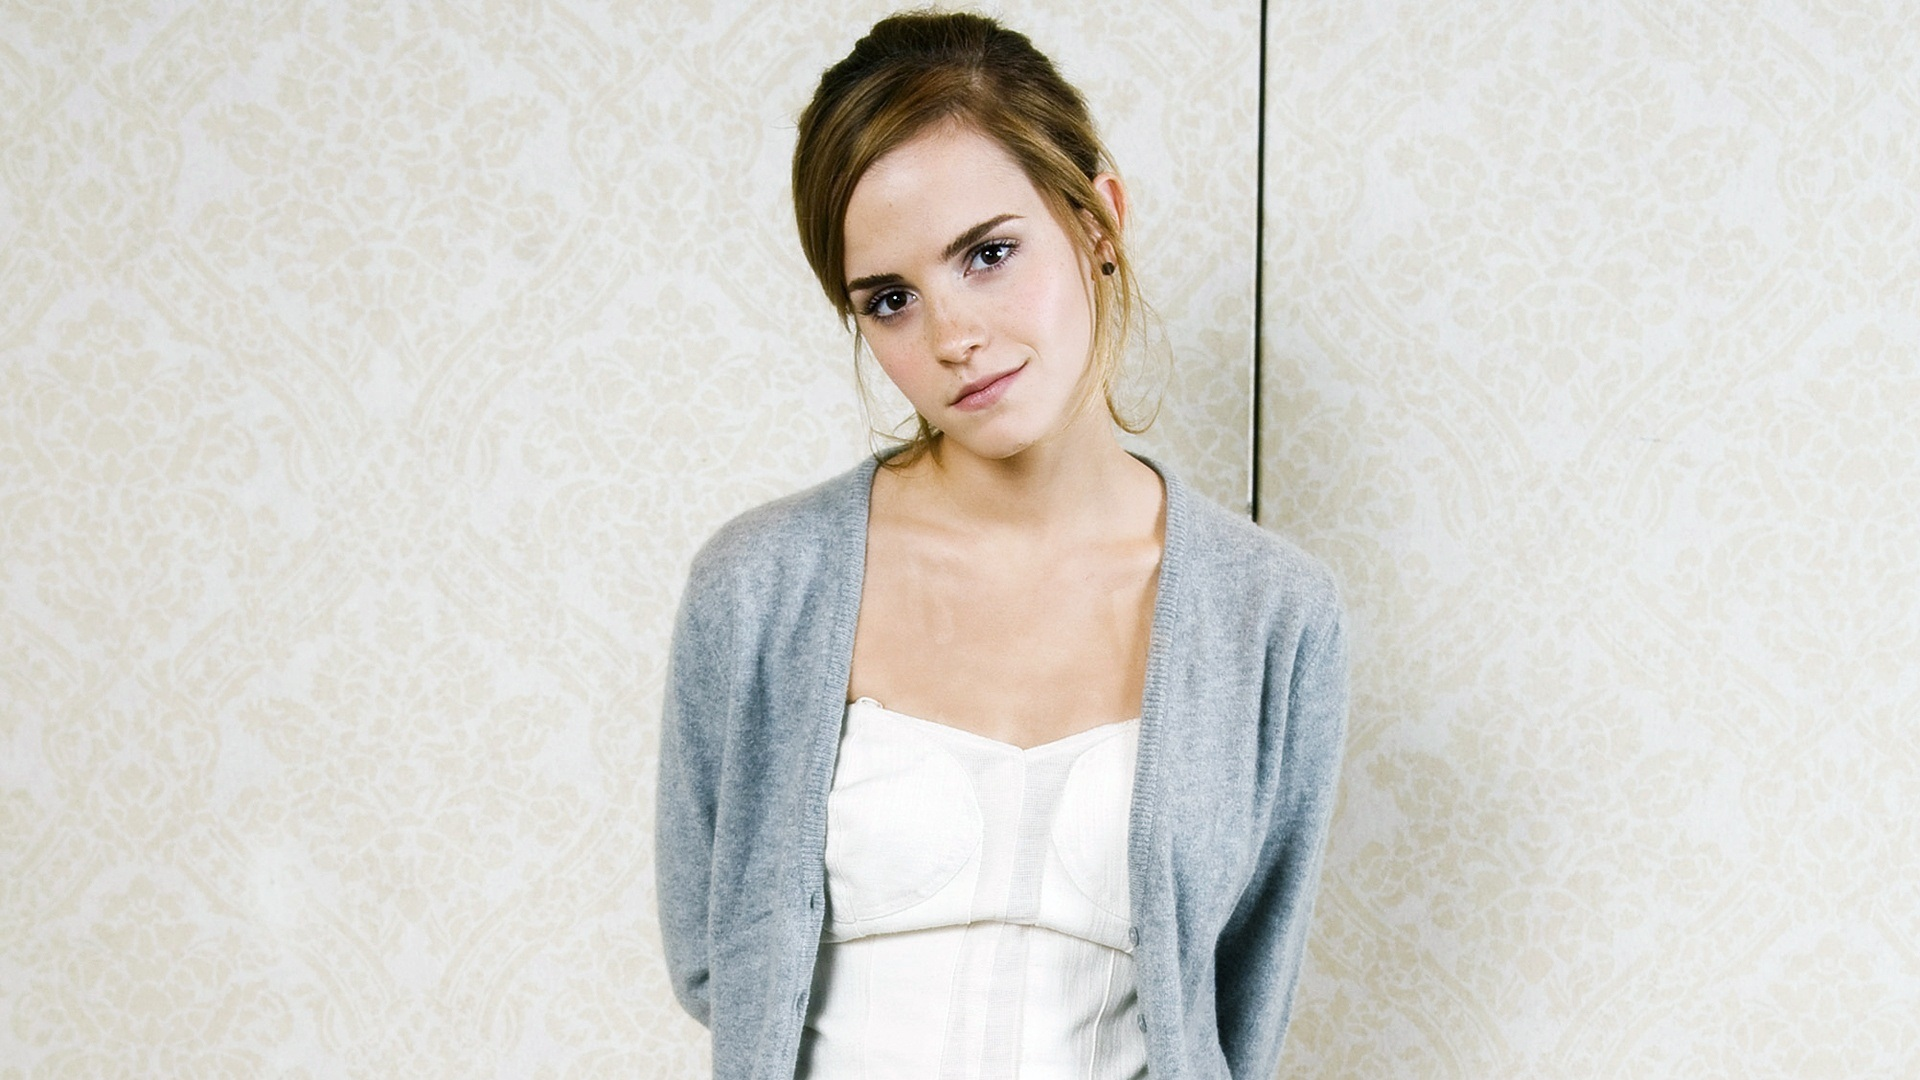 Emma Watson Gorgeous Wallpaper HD For Desktop #2181 Wallpaper